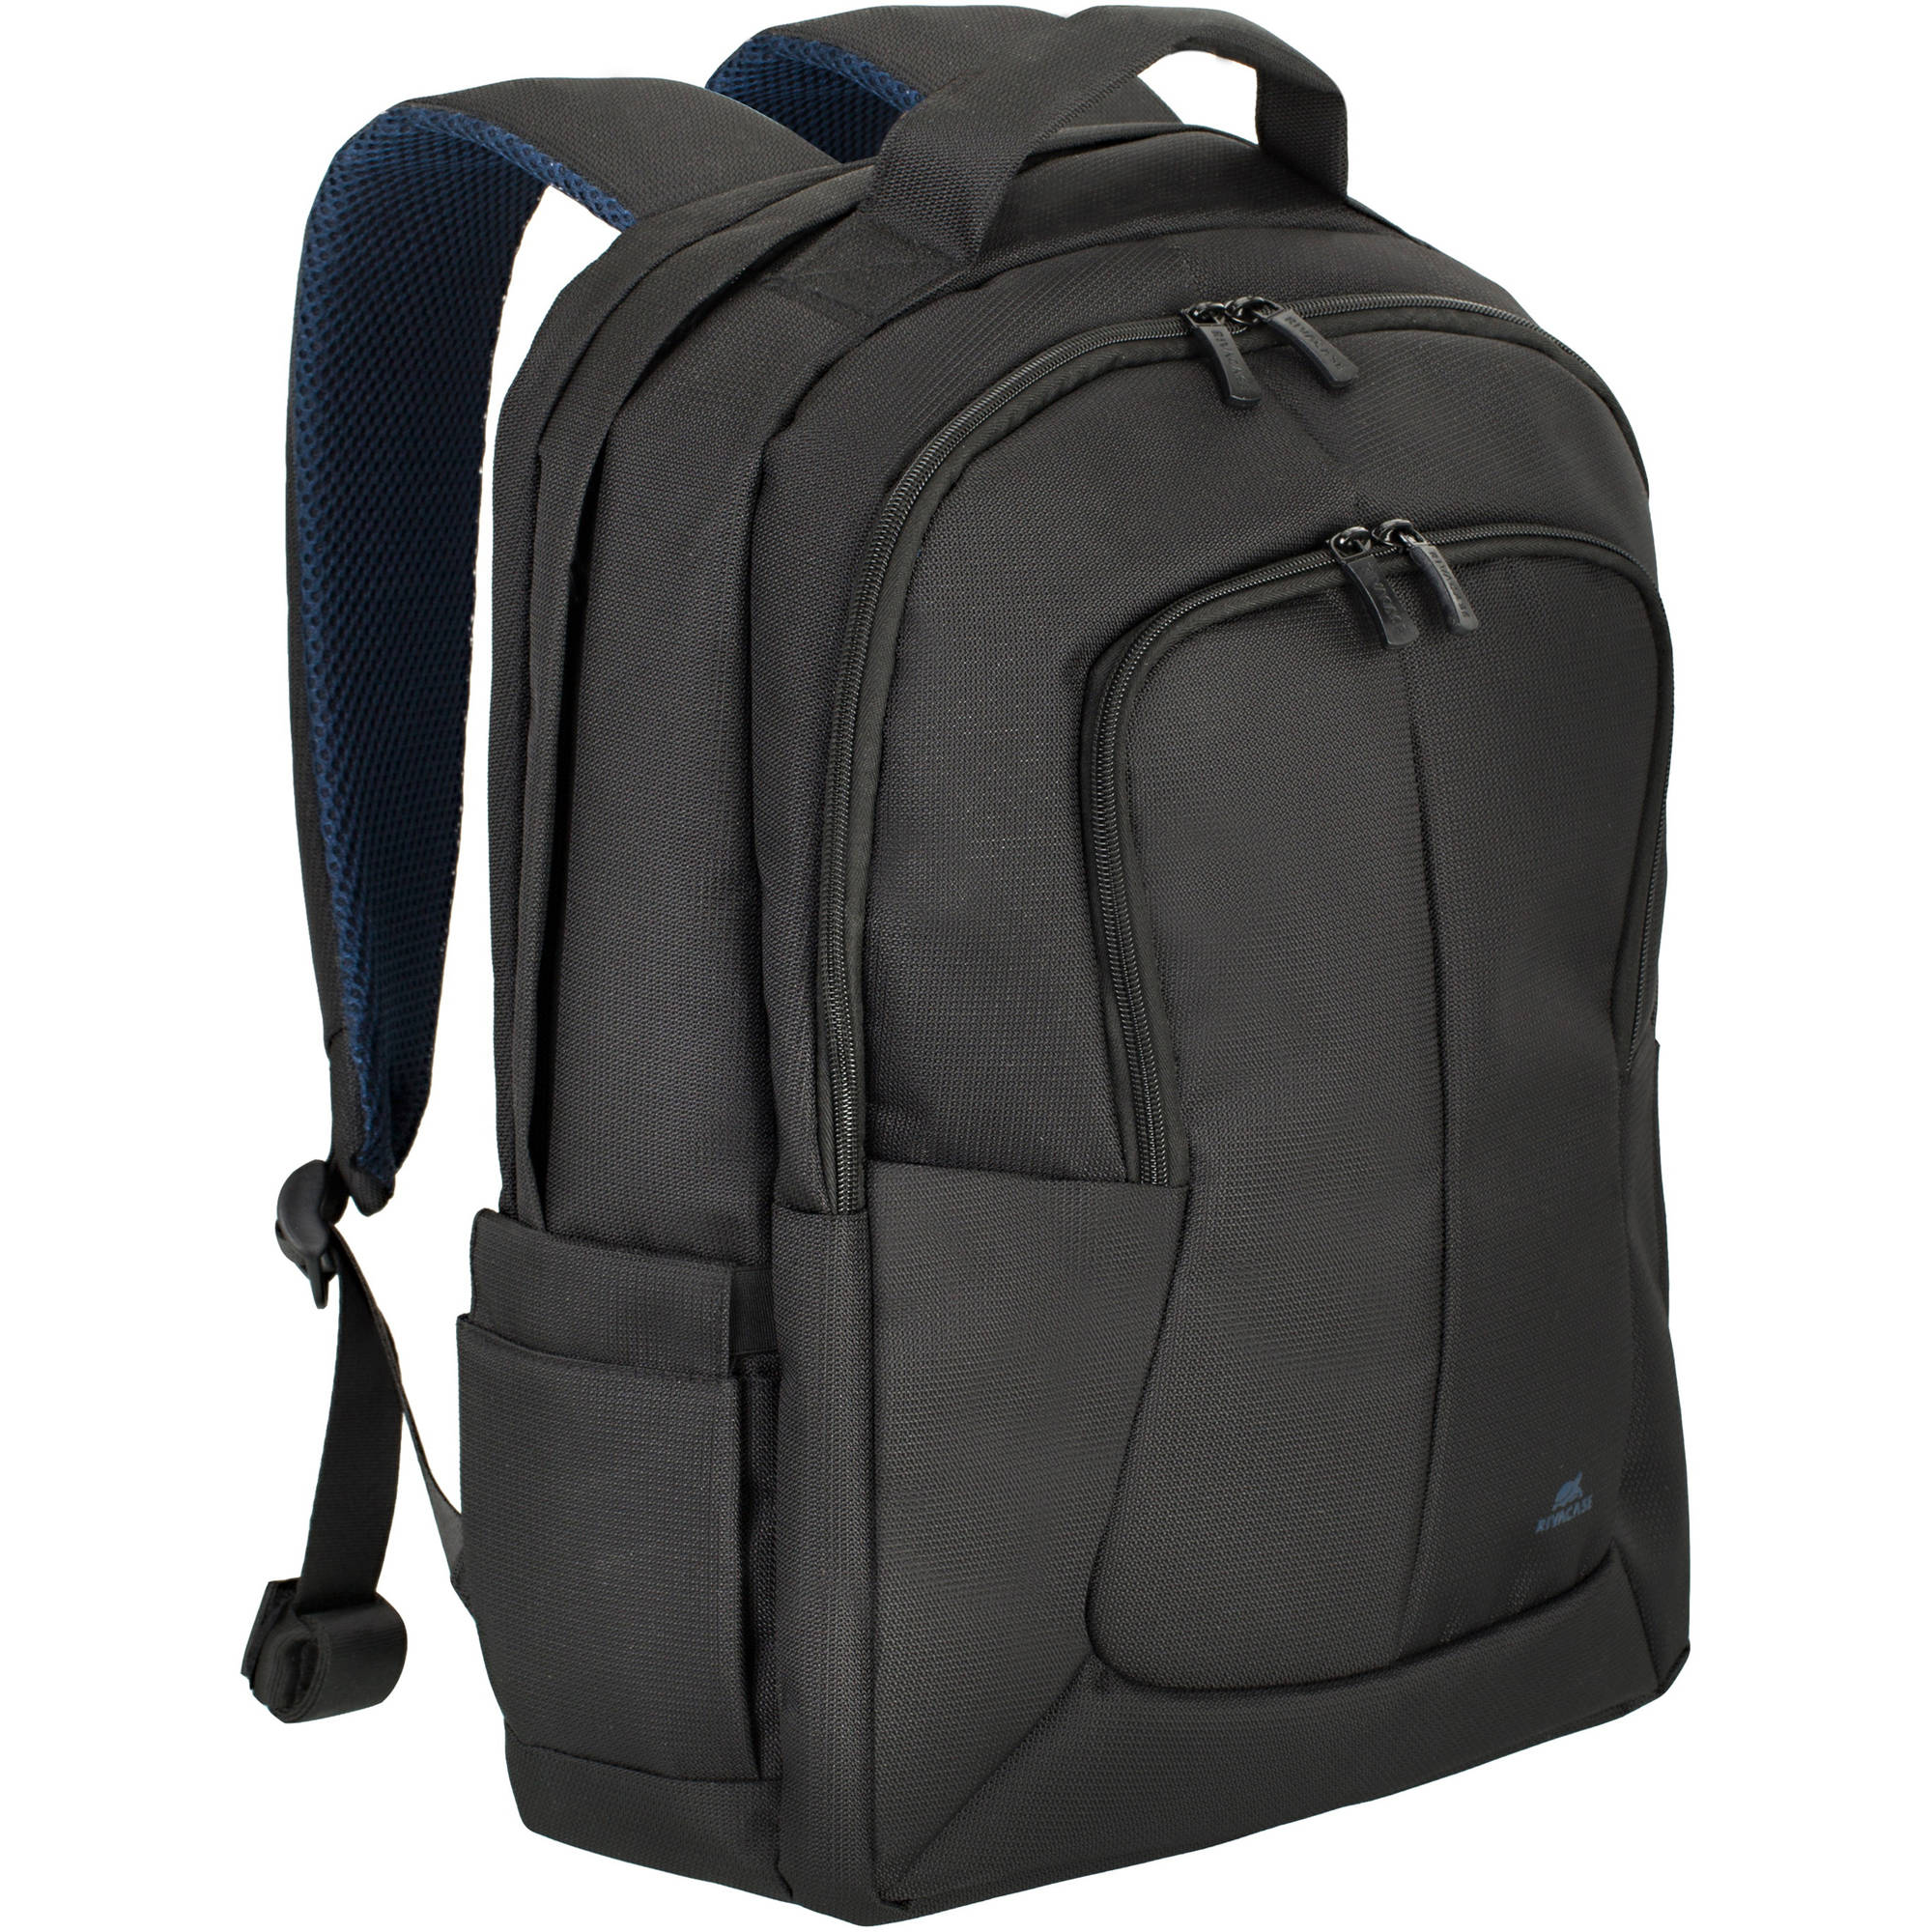 "RIVACASE 17"" Laptop Backpack 8460, Black"